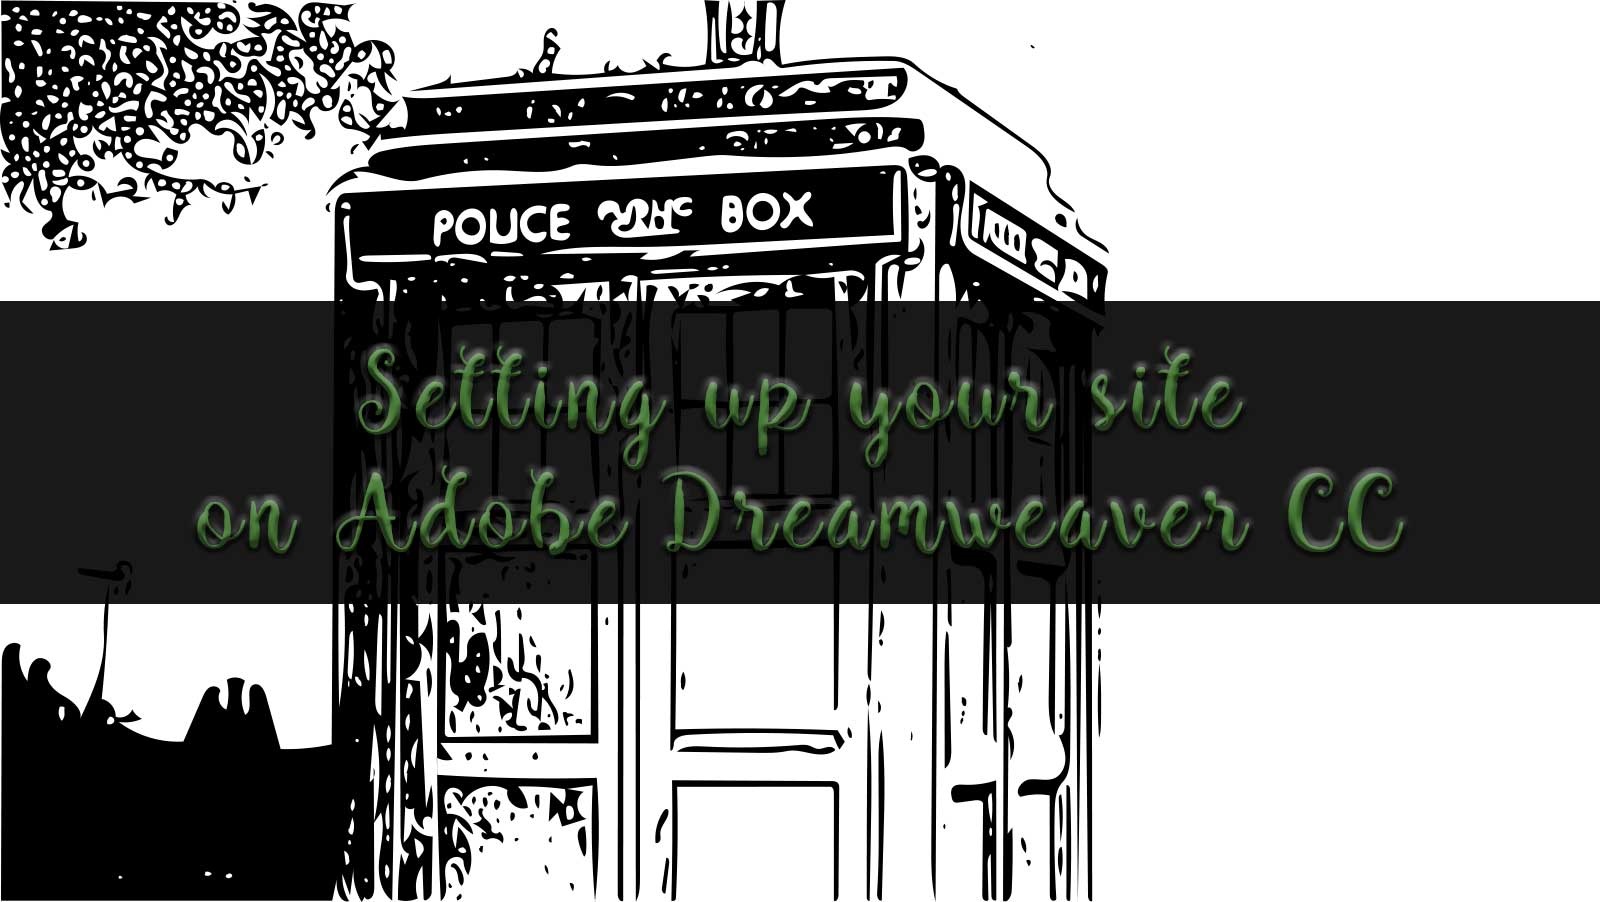 How to set up your website on Adobe Dreamweaver CC